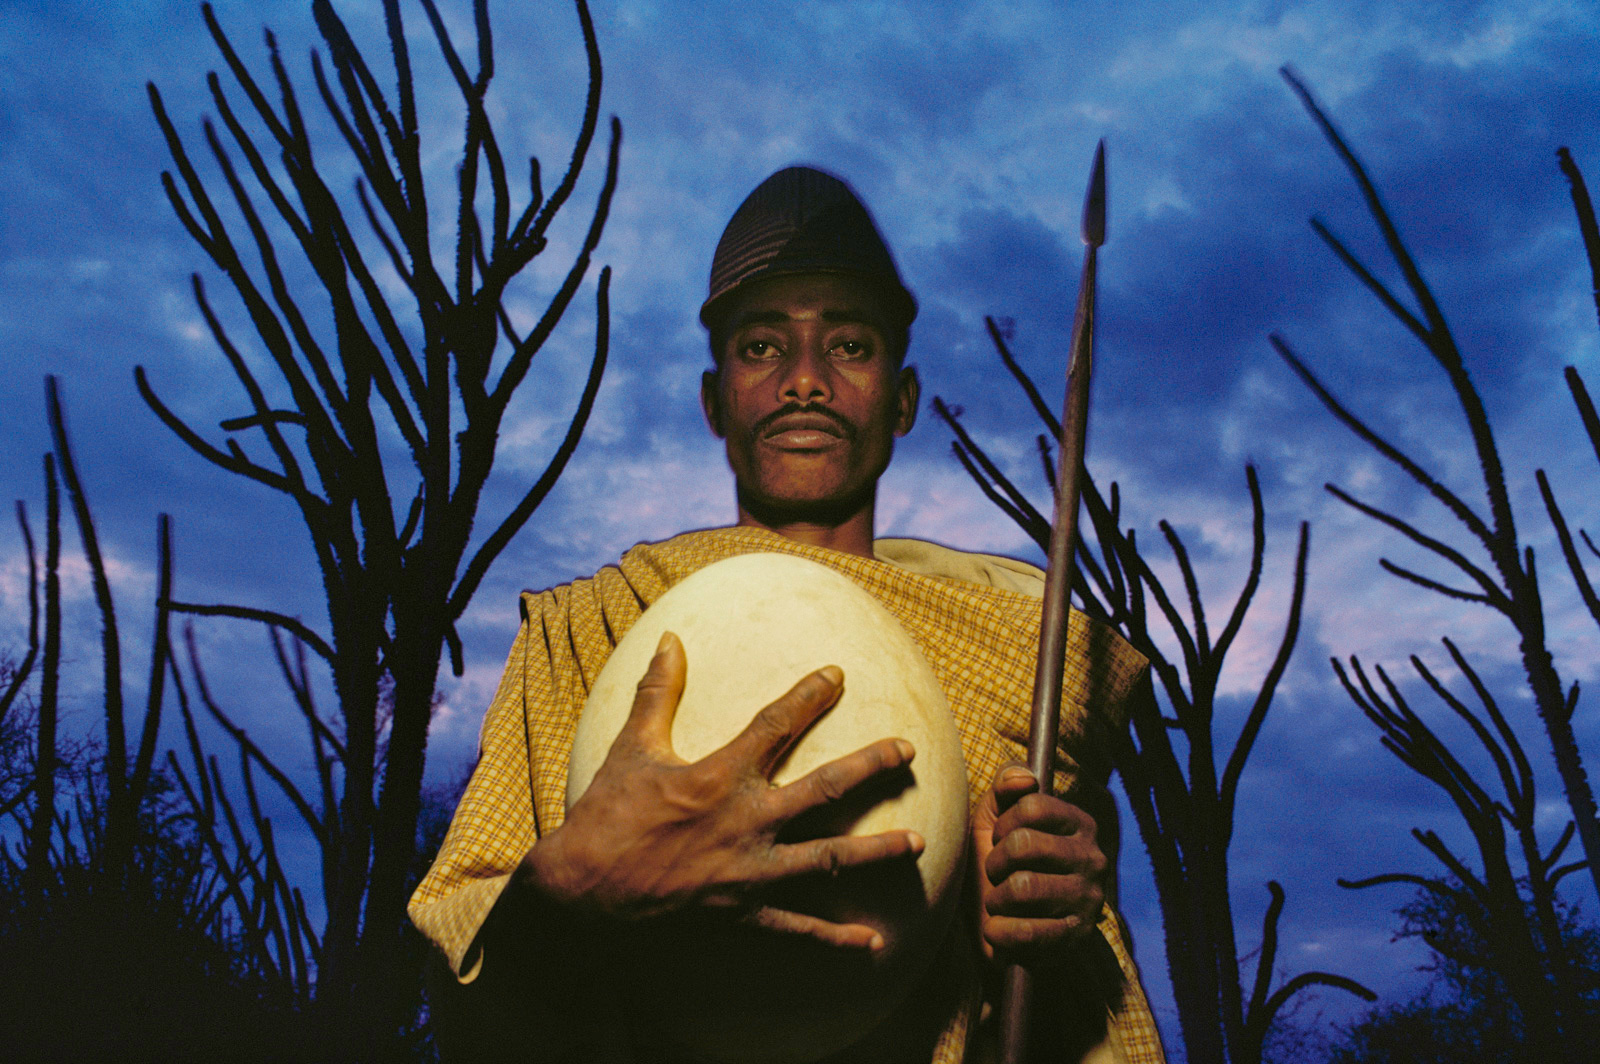 Antandroy tribesman with fossilized elephant bird egg, Southern Madagascar